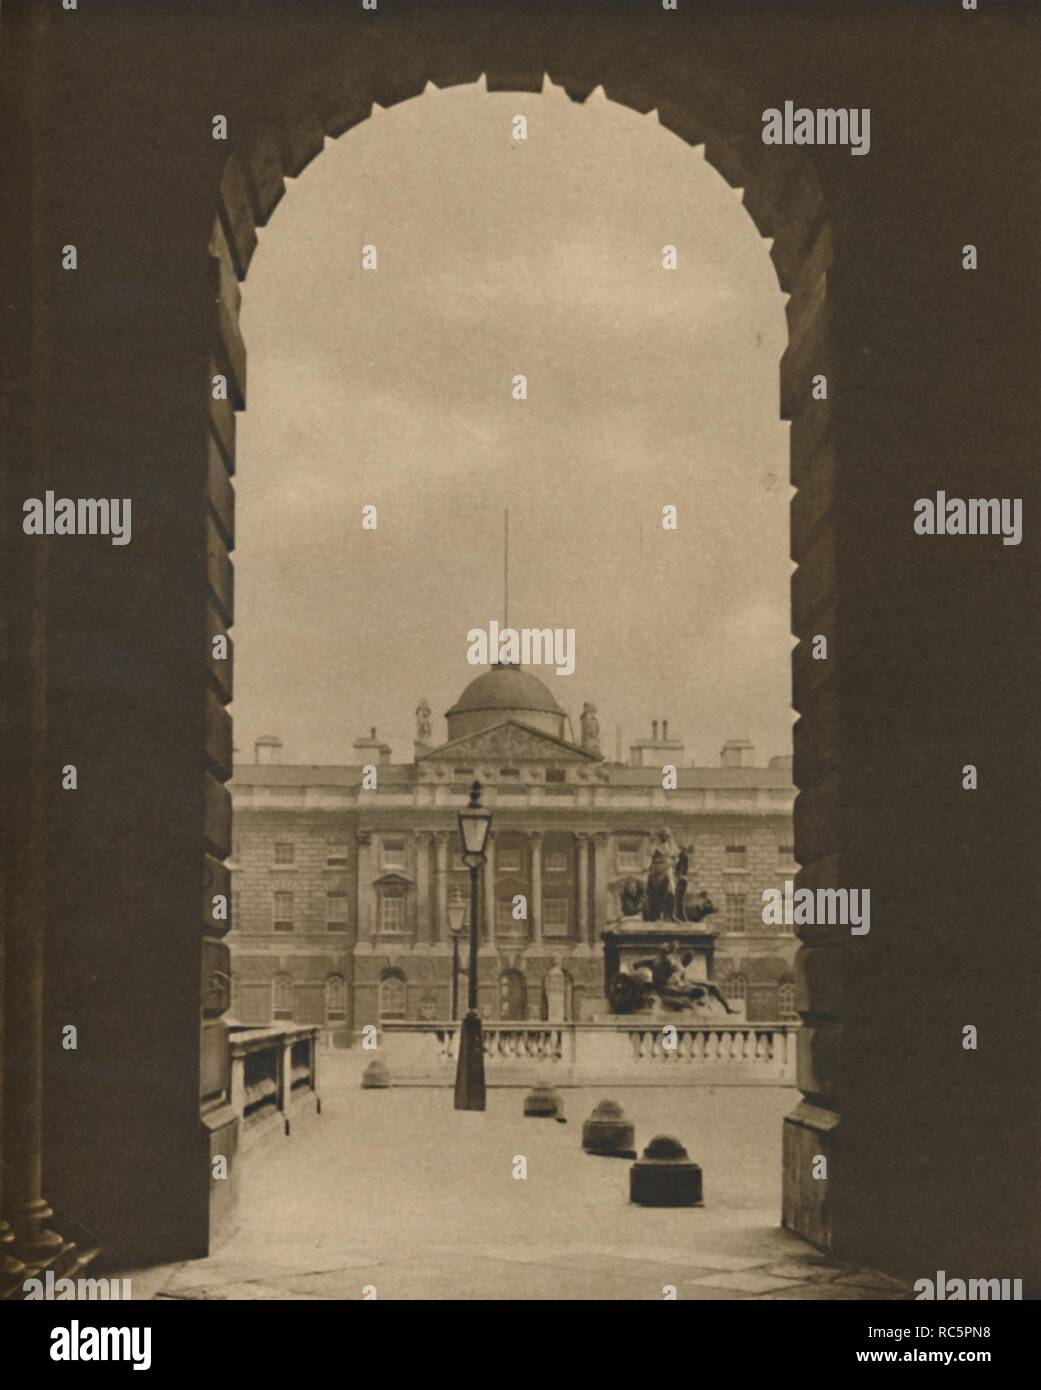 """'A Passing View of Somerset House From The Strand', c1935. Somerset House in London was built to the designs of Sir William Chambers, and was intended to house public offices: the Navy Board, the Royal Academy of Arts, the Royal Society, and the Society of Antiquaries. The foundations were laid in 1776, and completed by 1780. From """"Wonderful London, Volume 1"""", edited by Arthur St John Adcock. [The Fleetway House, London, c1935] - Stock Image"""